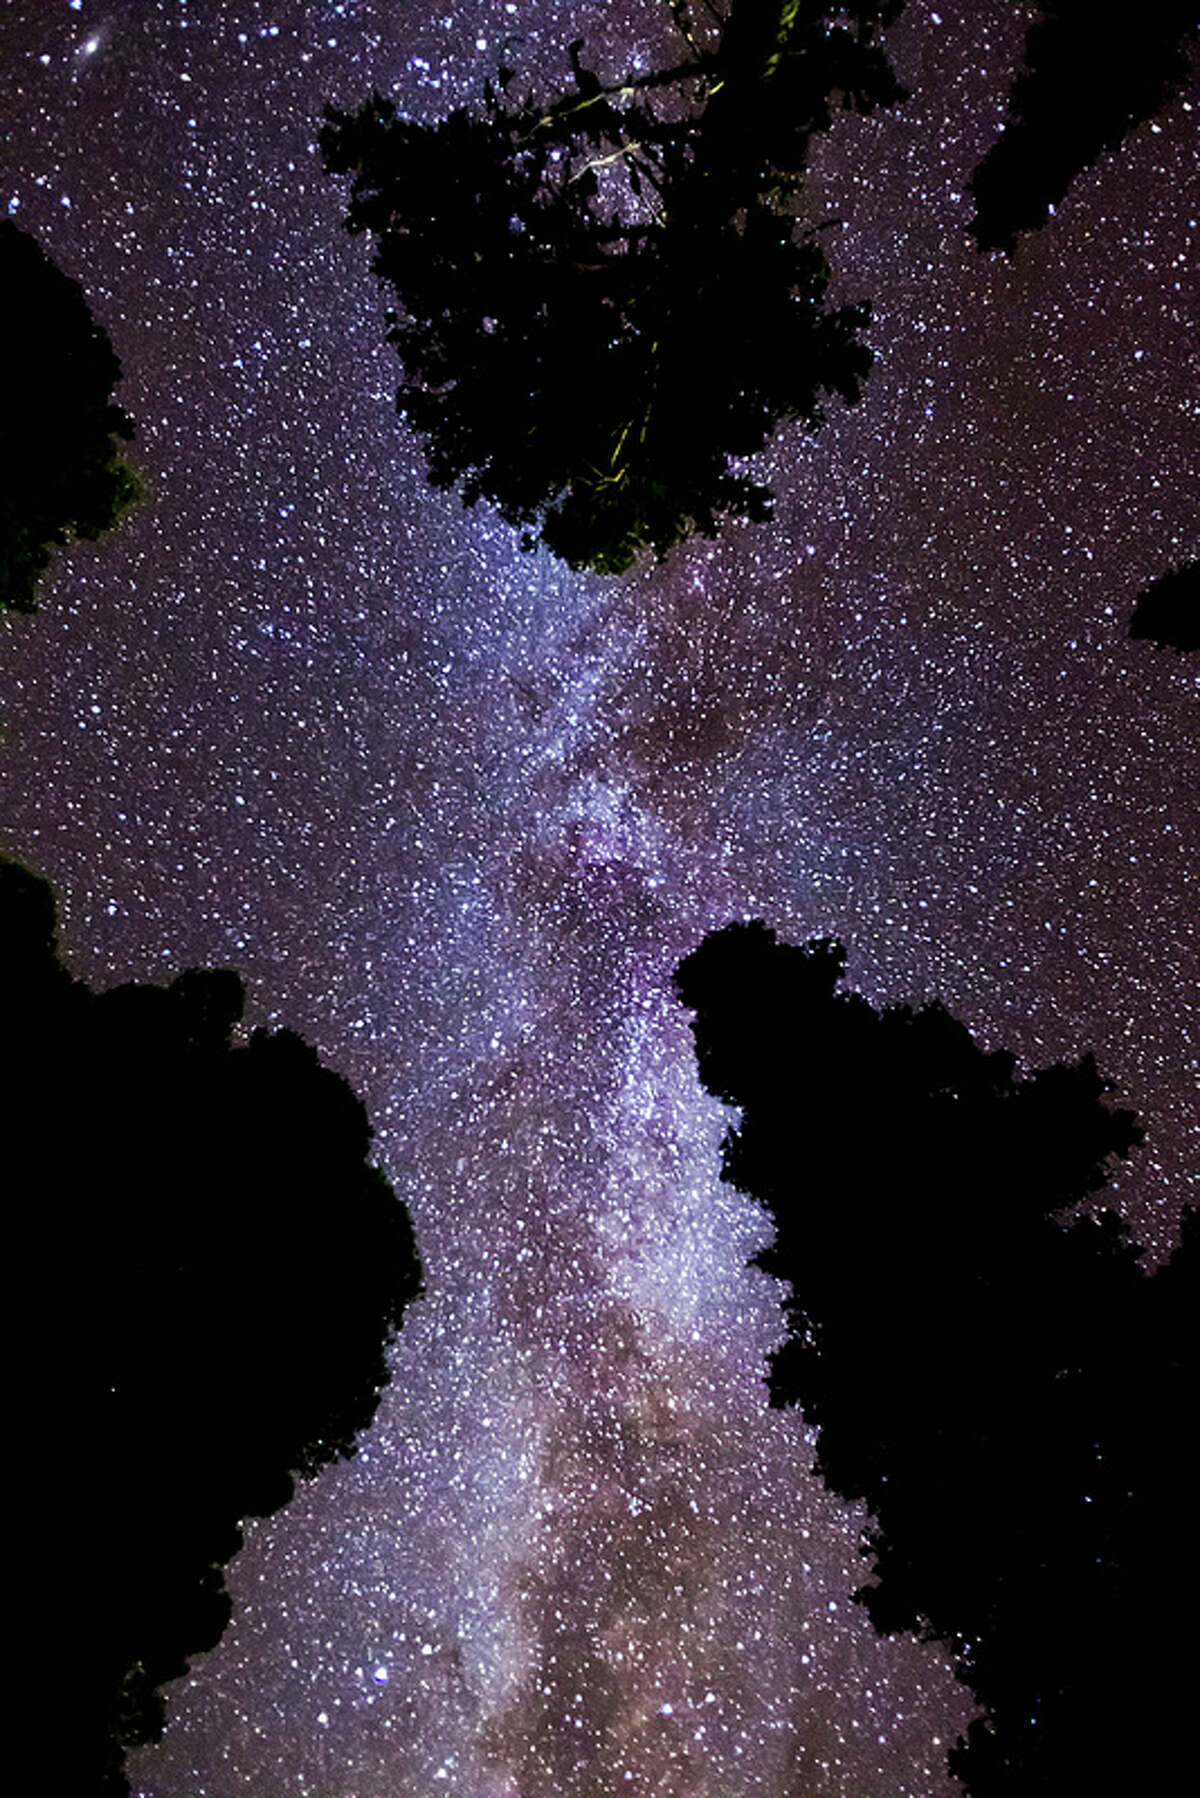 The Milky Way as photographed by Loren Mooney, a Senior Program Manager at Amazon, from Blewett Pass on Saturday, Oct. 5, 2013.Check out these photos and more on Loren Mooney's Flickr page.